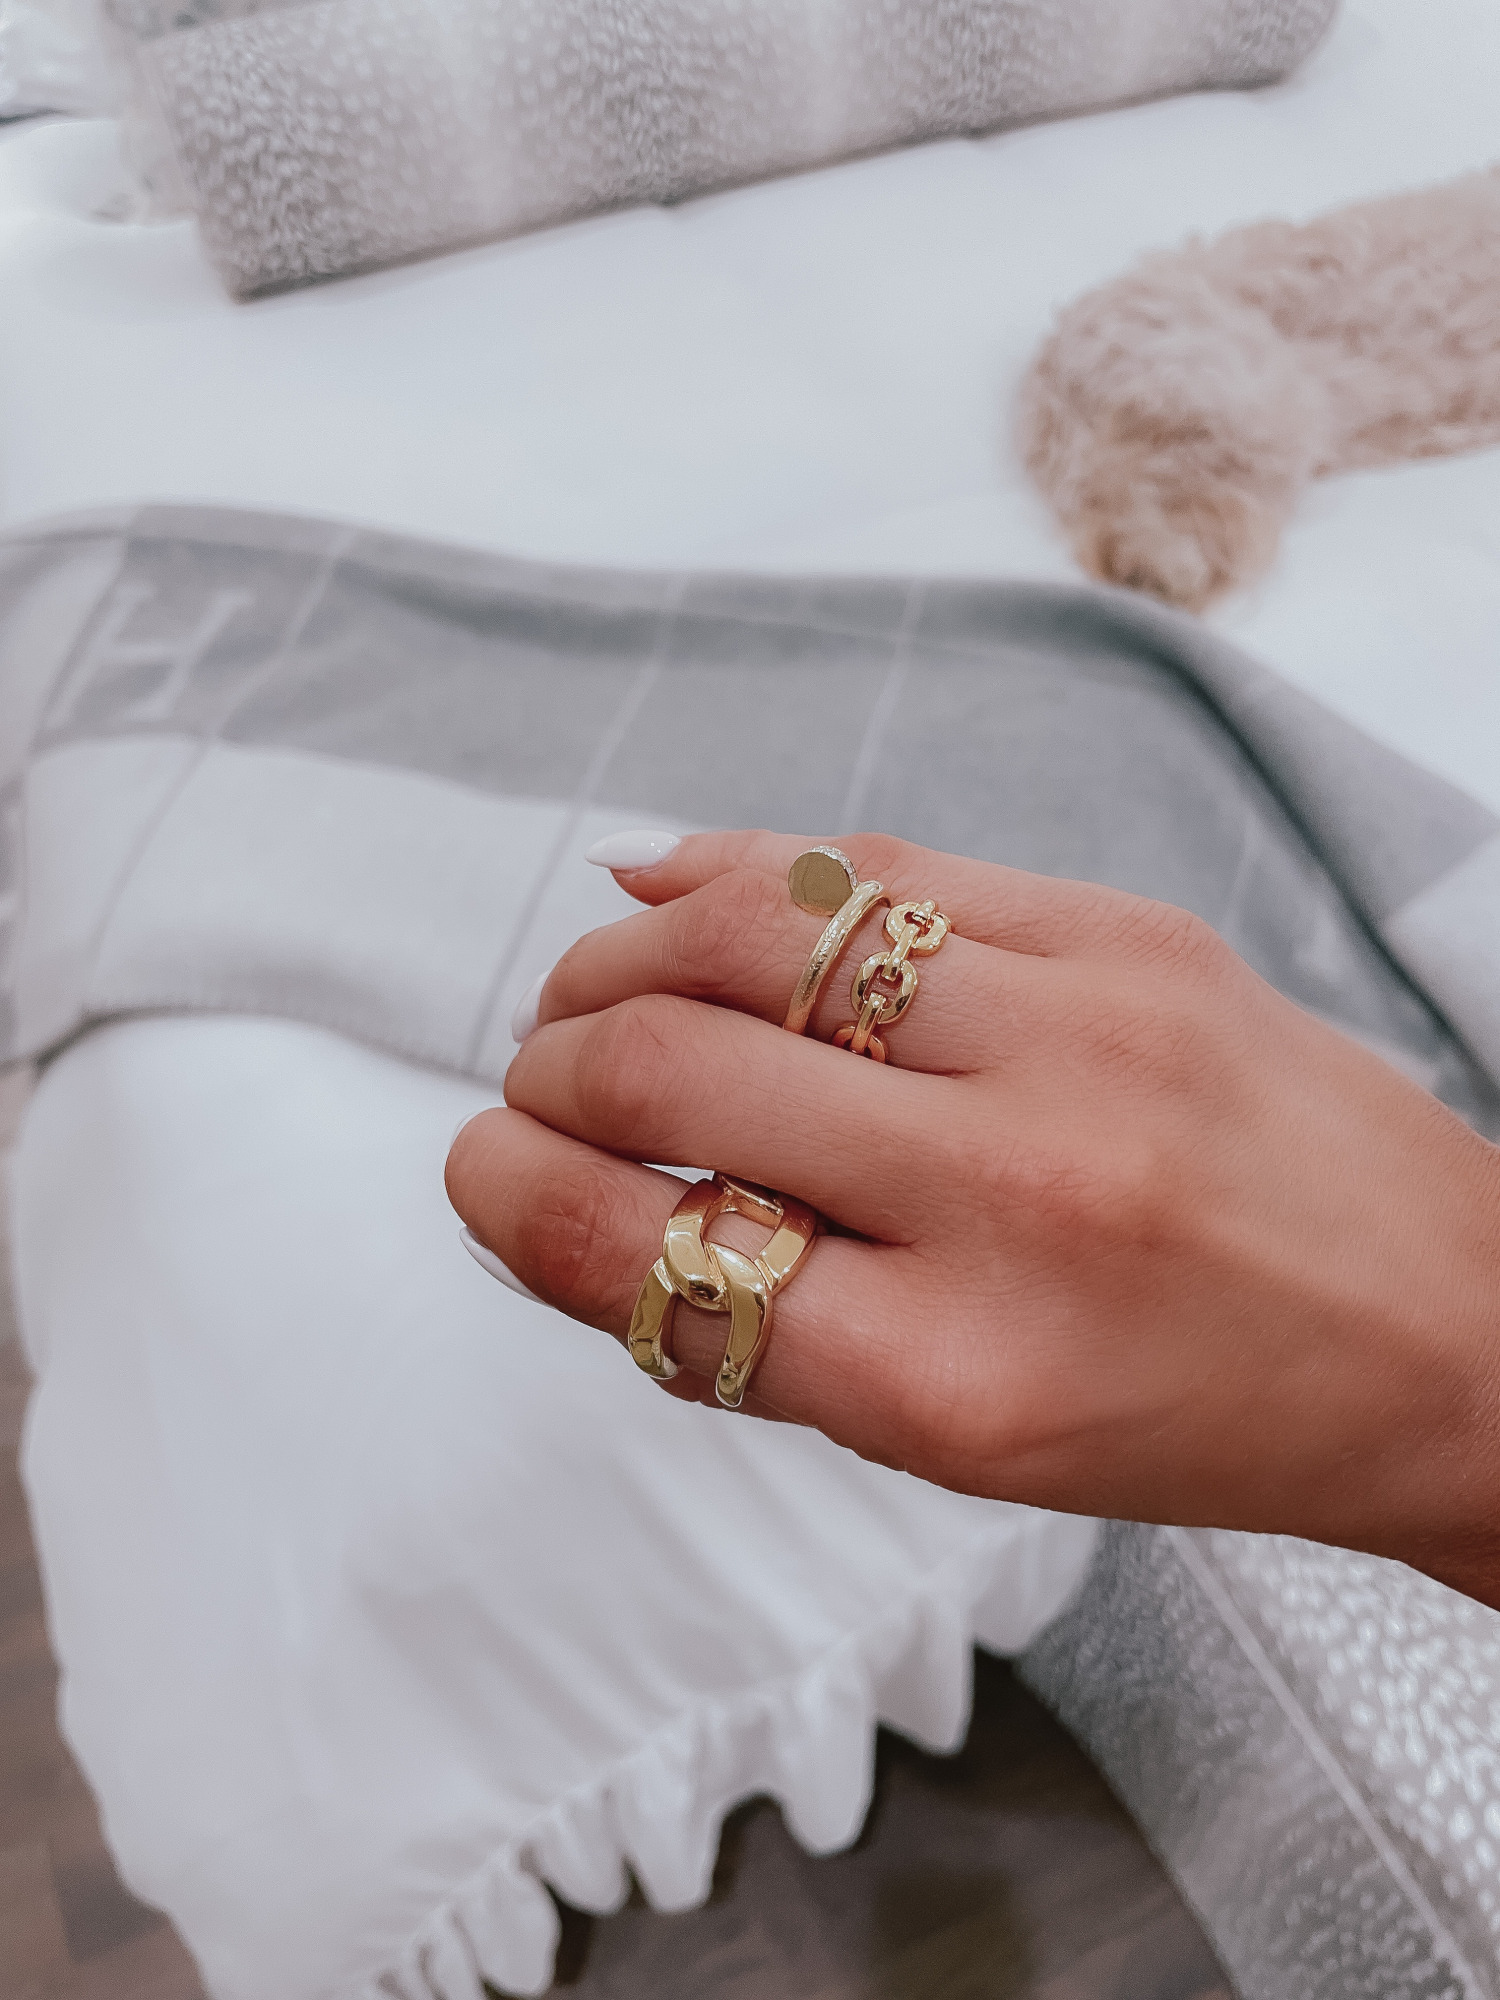 Vici Try On by popular US fashion blog, The Sweetest Thing: image of Emily Gemma wearing a oversized gold chain ring and a medium size gold chain ring.